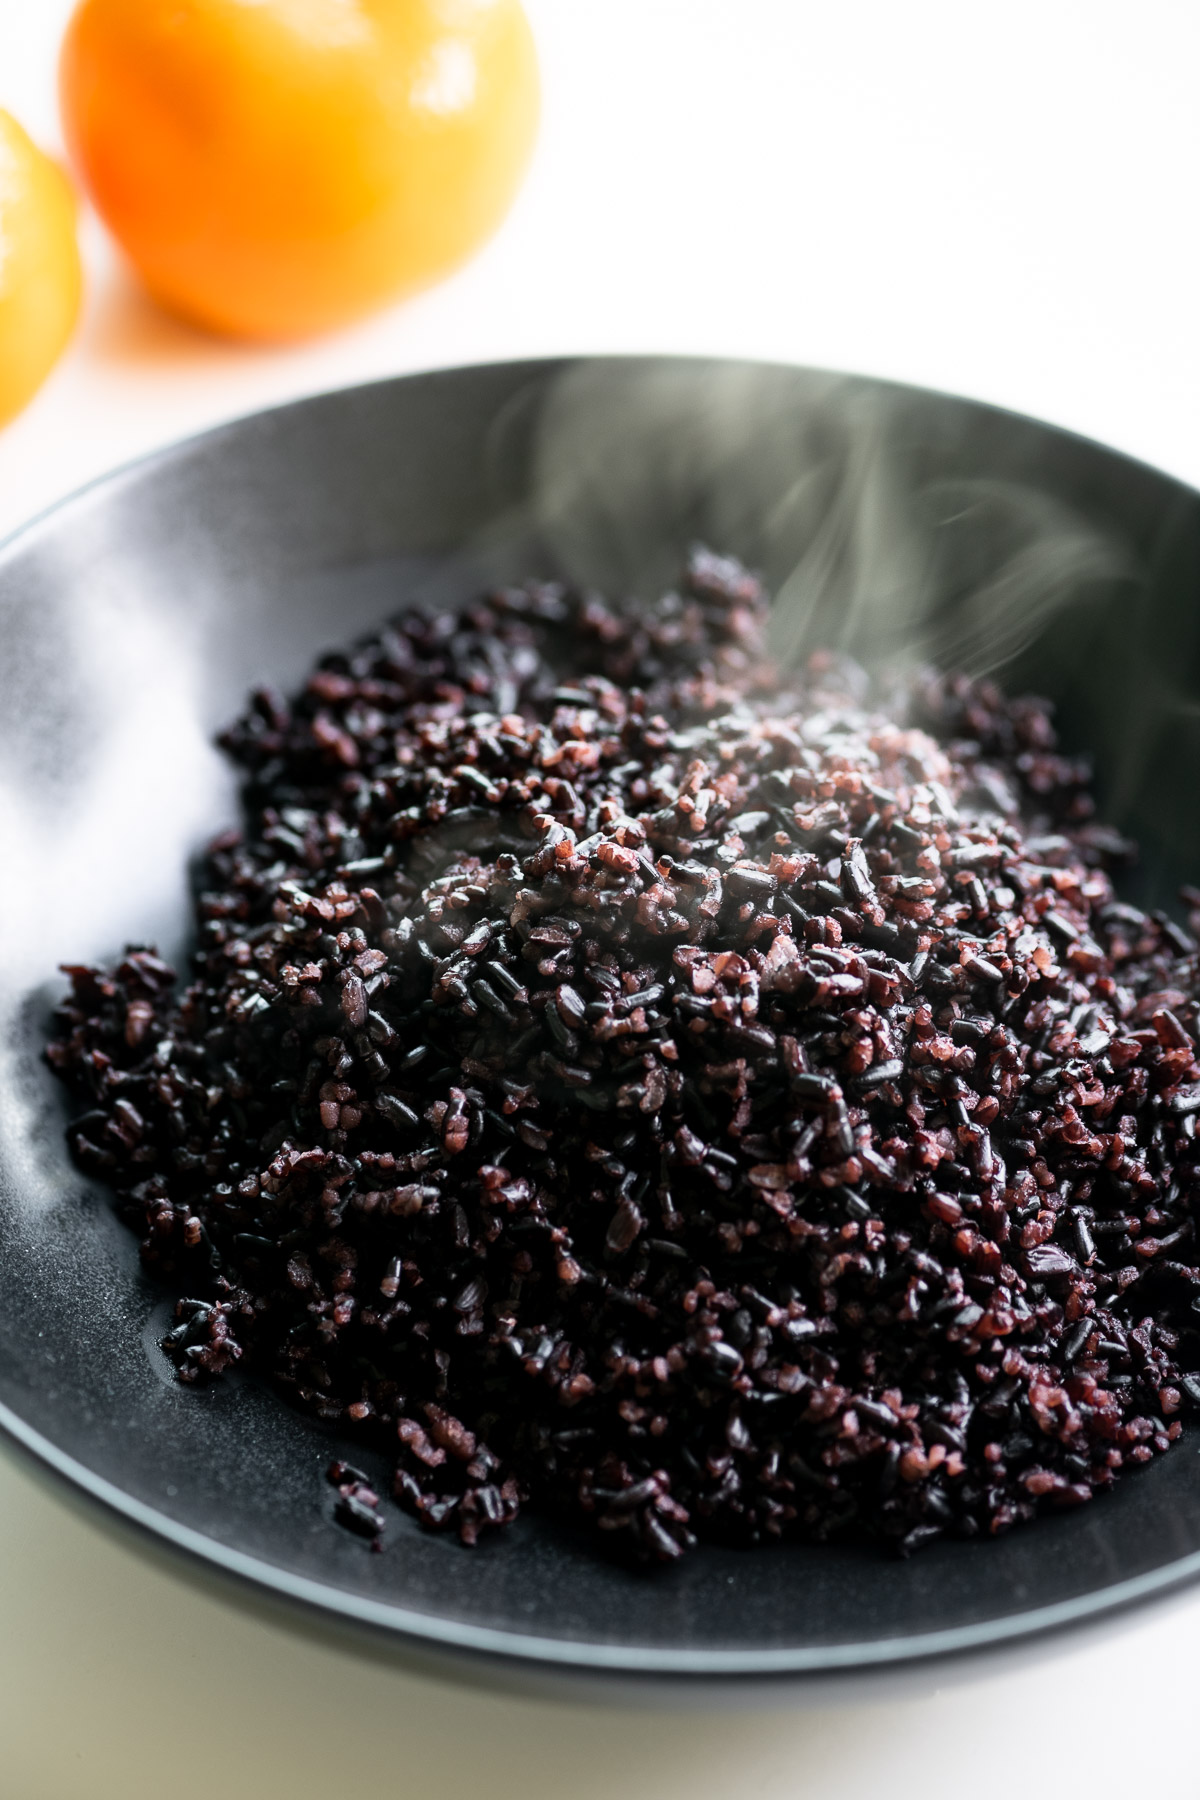 black rice steaming in a bowl